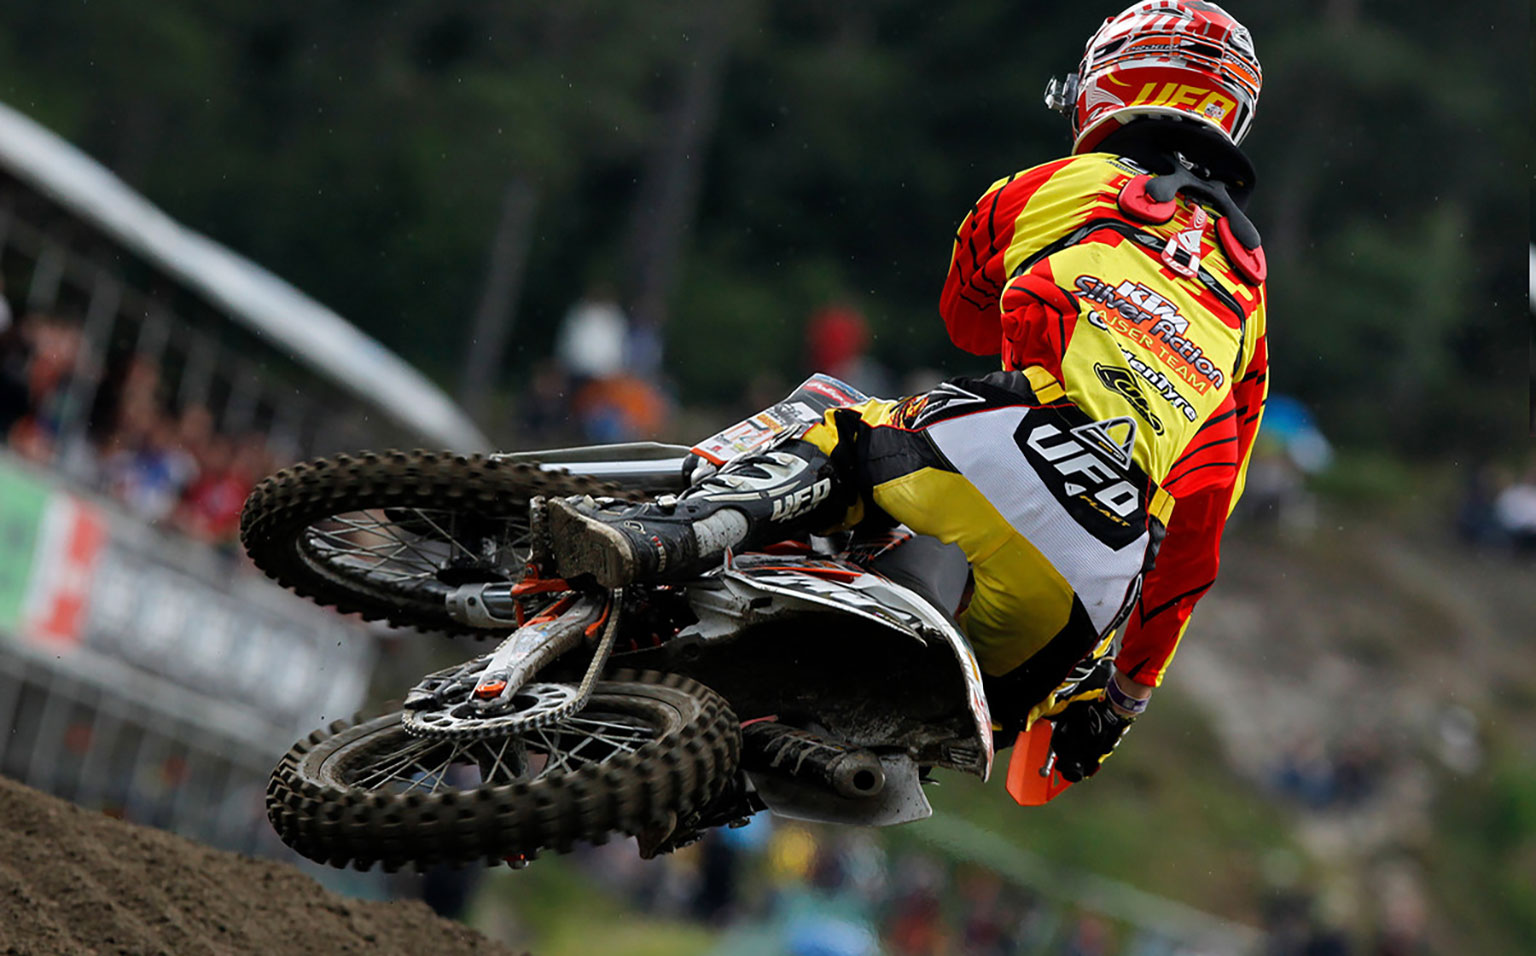 Gajser was once a KTM rider, but was dropped